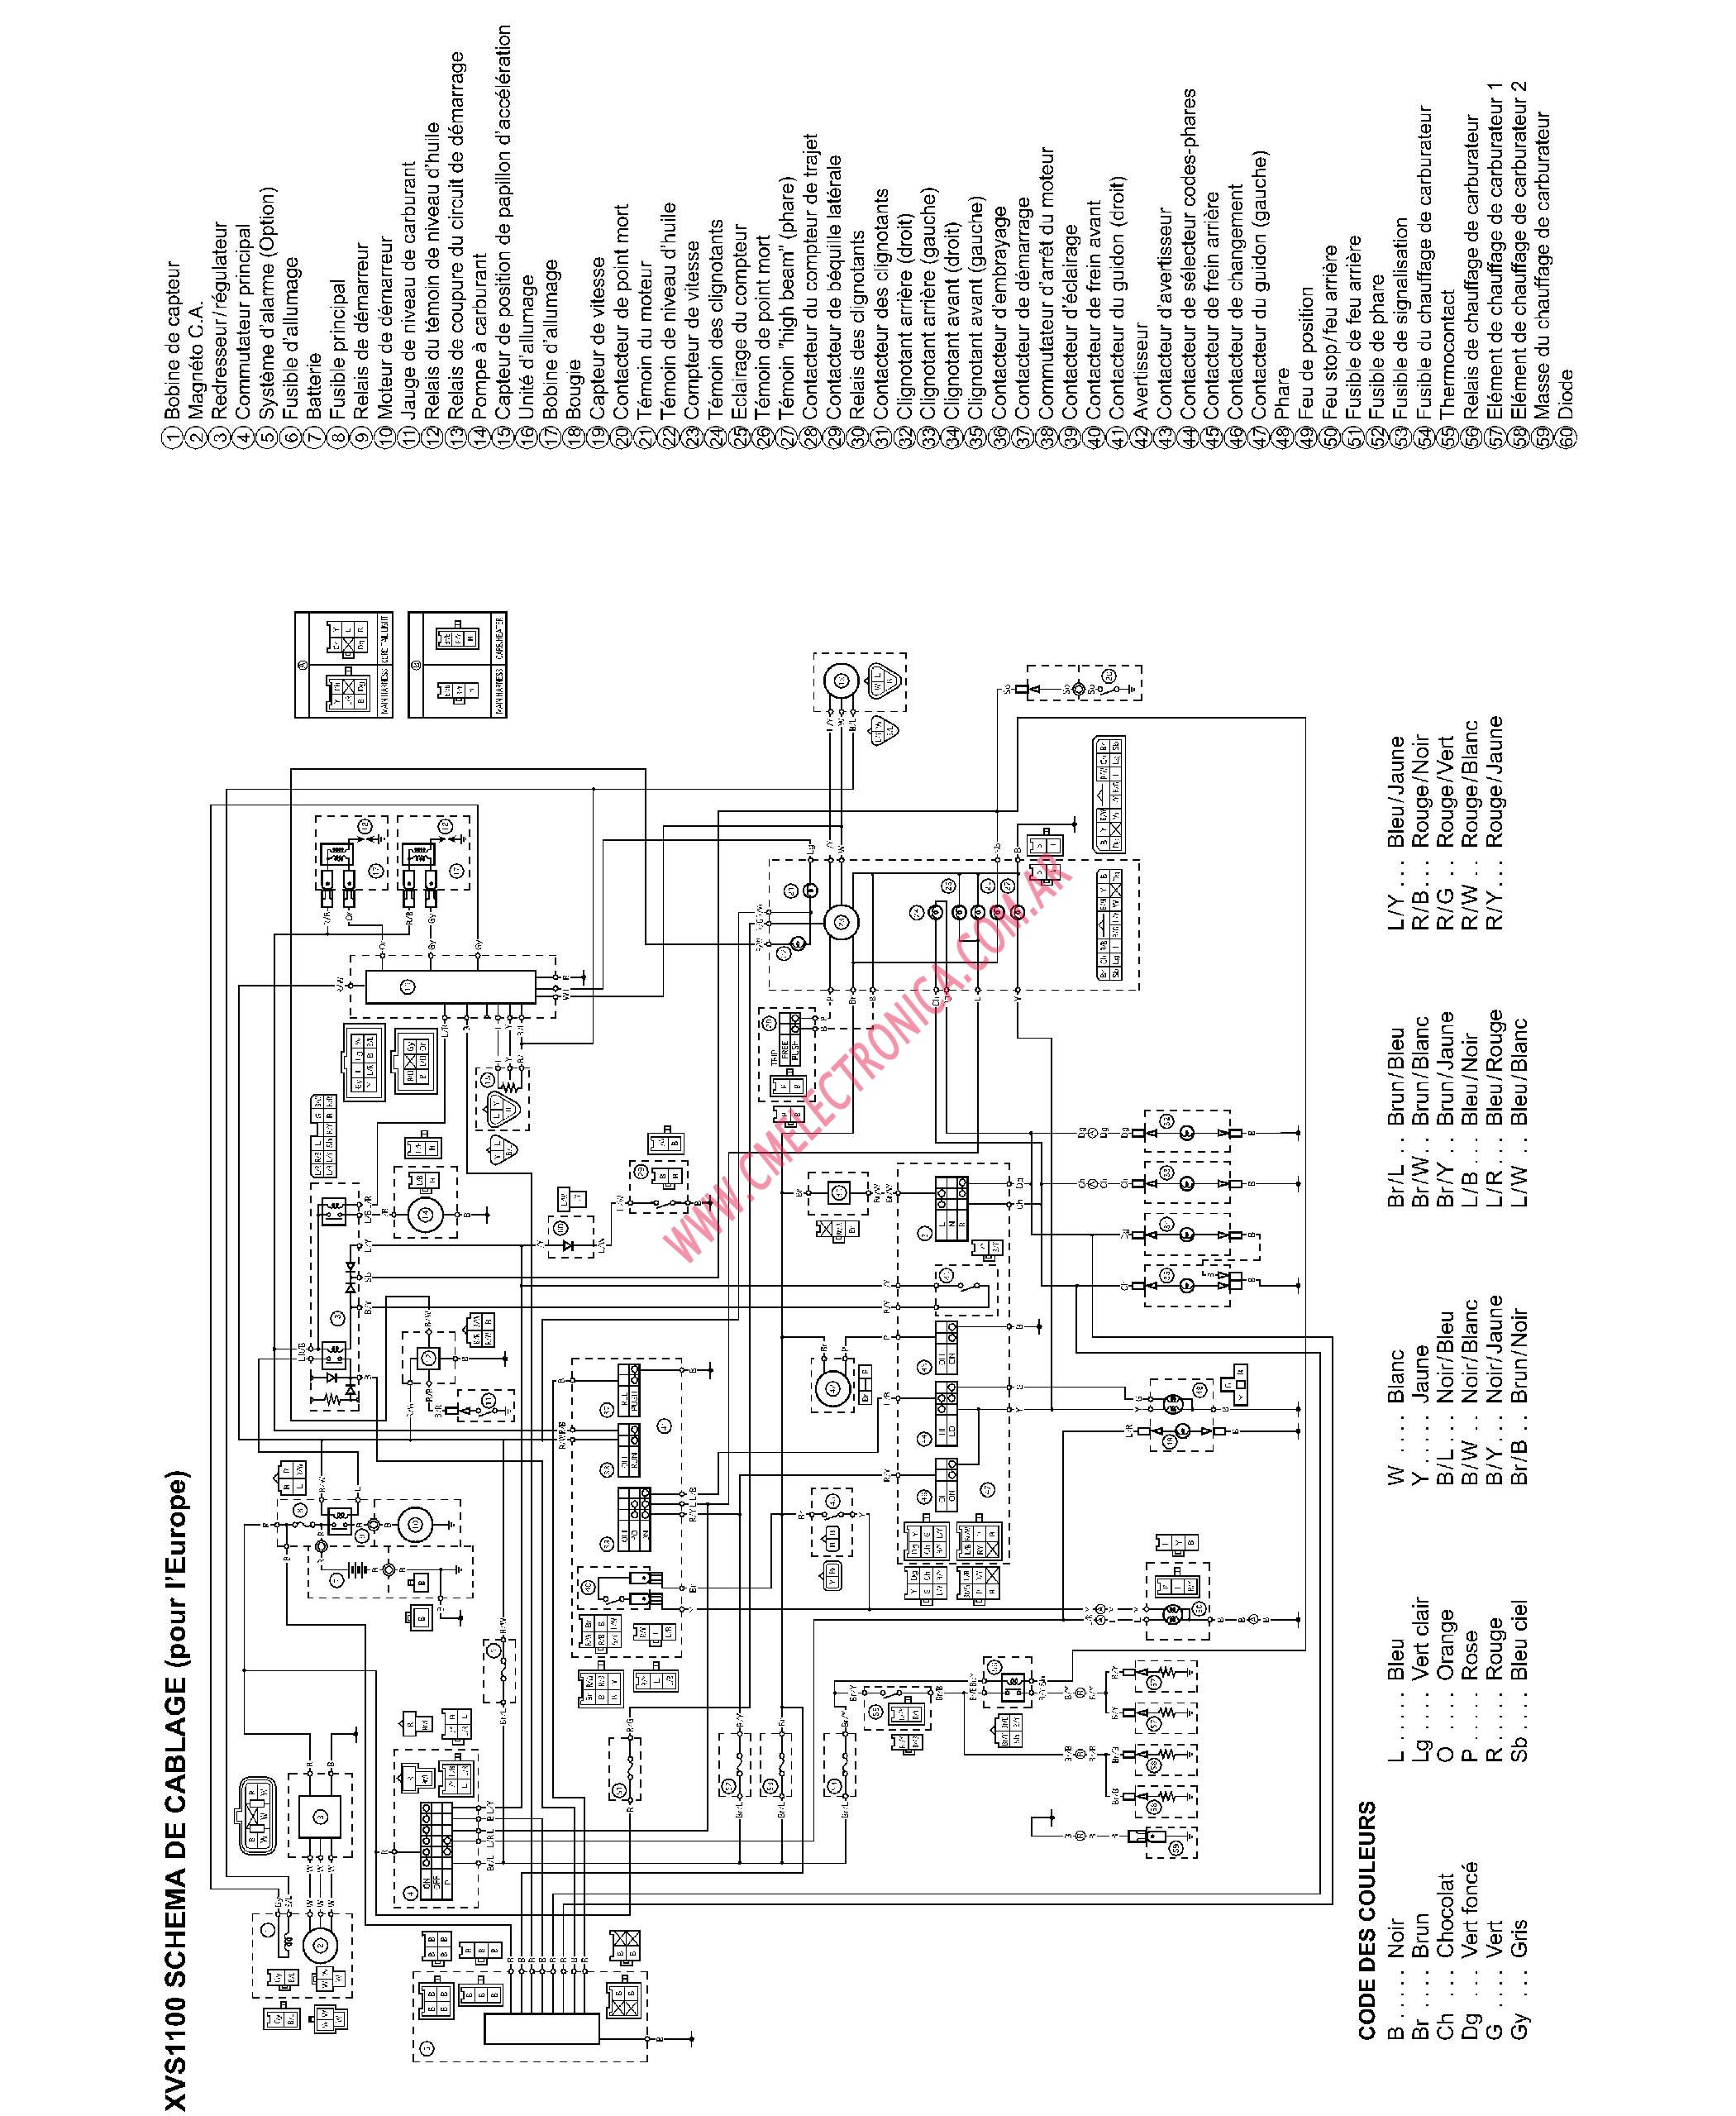 DIAGRAM] Speedo Wiring Diagram 2006 Zzr600 FULL Version HD Quality 2006  Zzr600 - CISSPDIAGRAMS.SELVAIS-ELEC.FRDescription